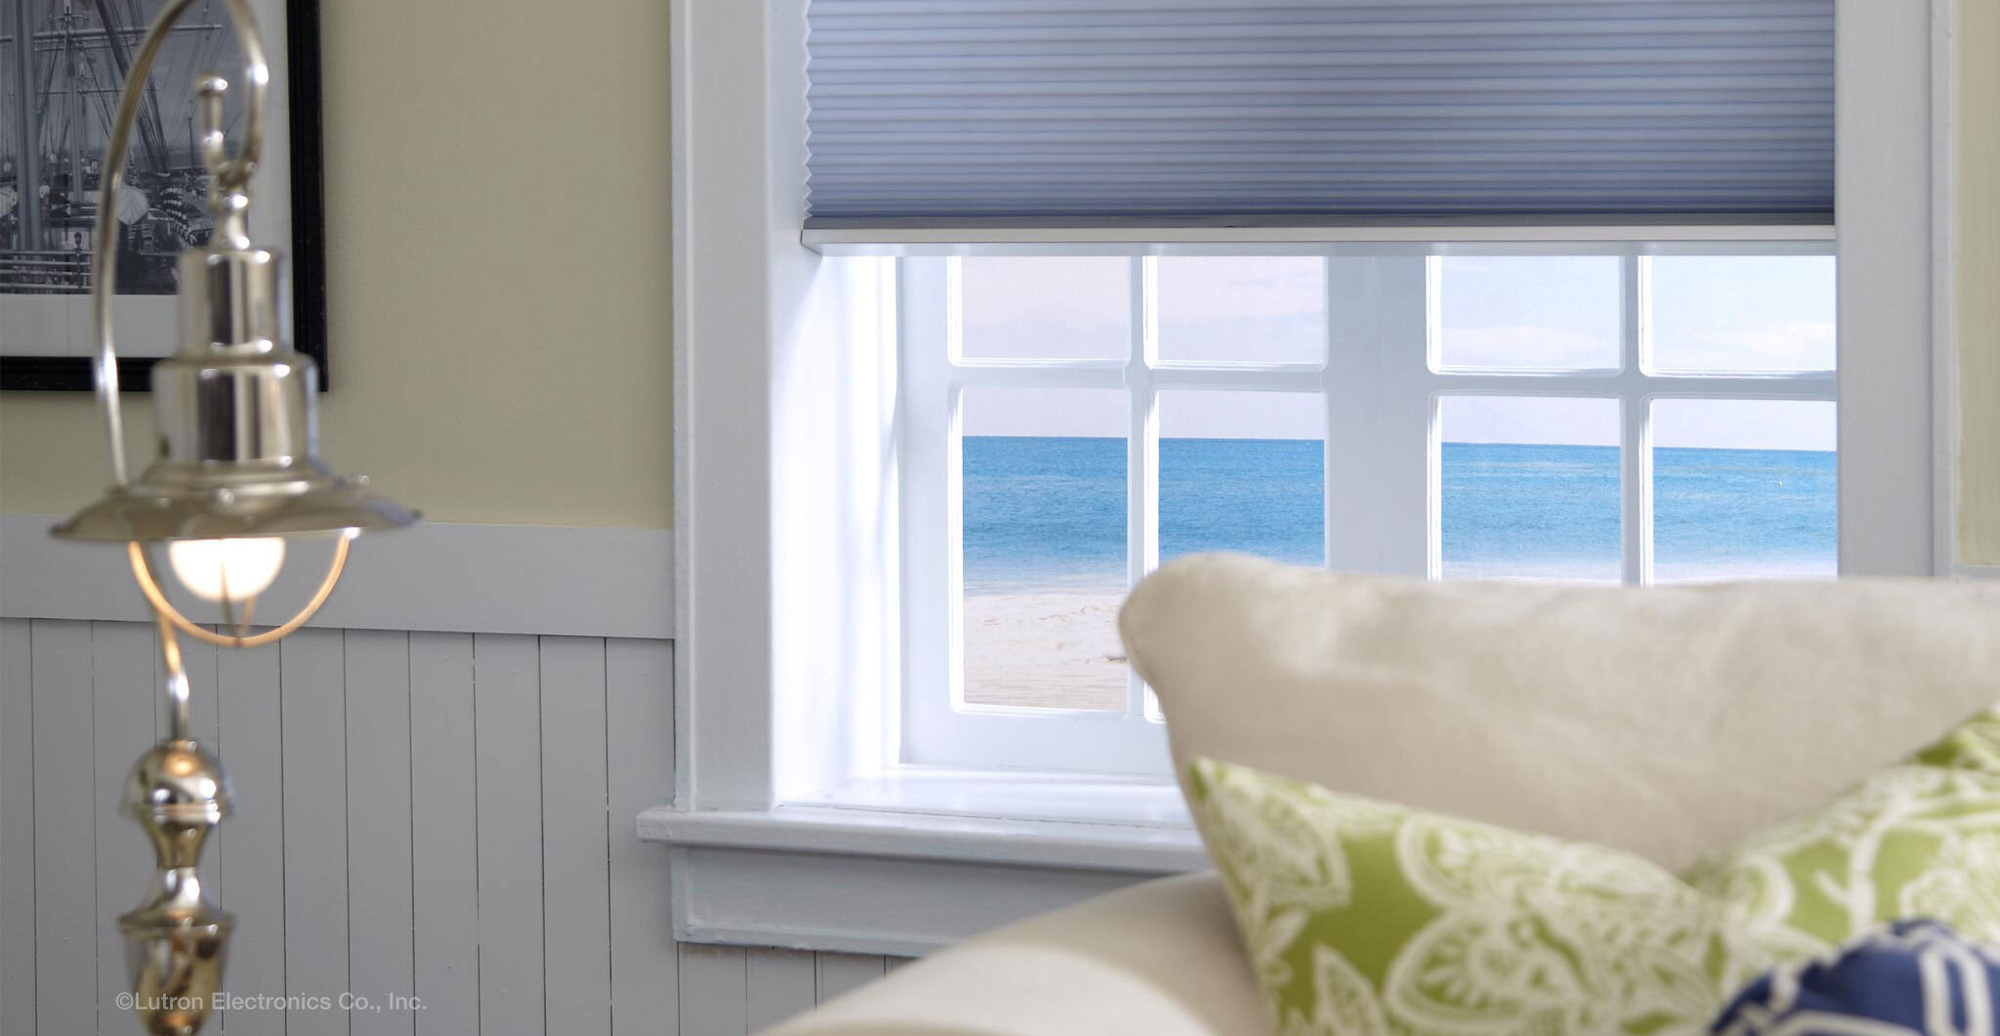 Enjoy Natural Sunlight in Your Home with Just a Tap!